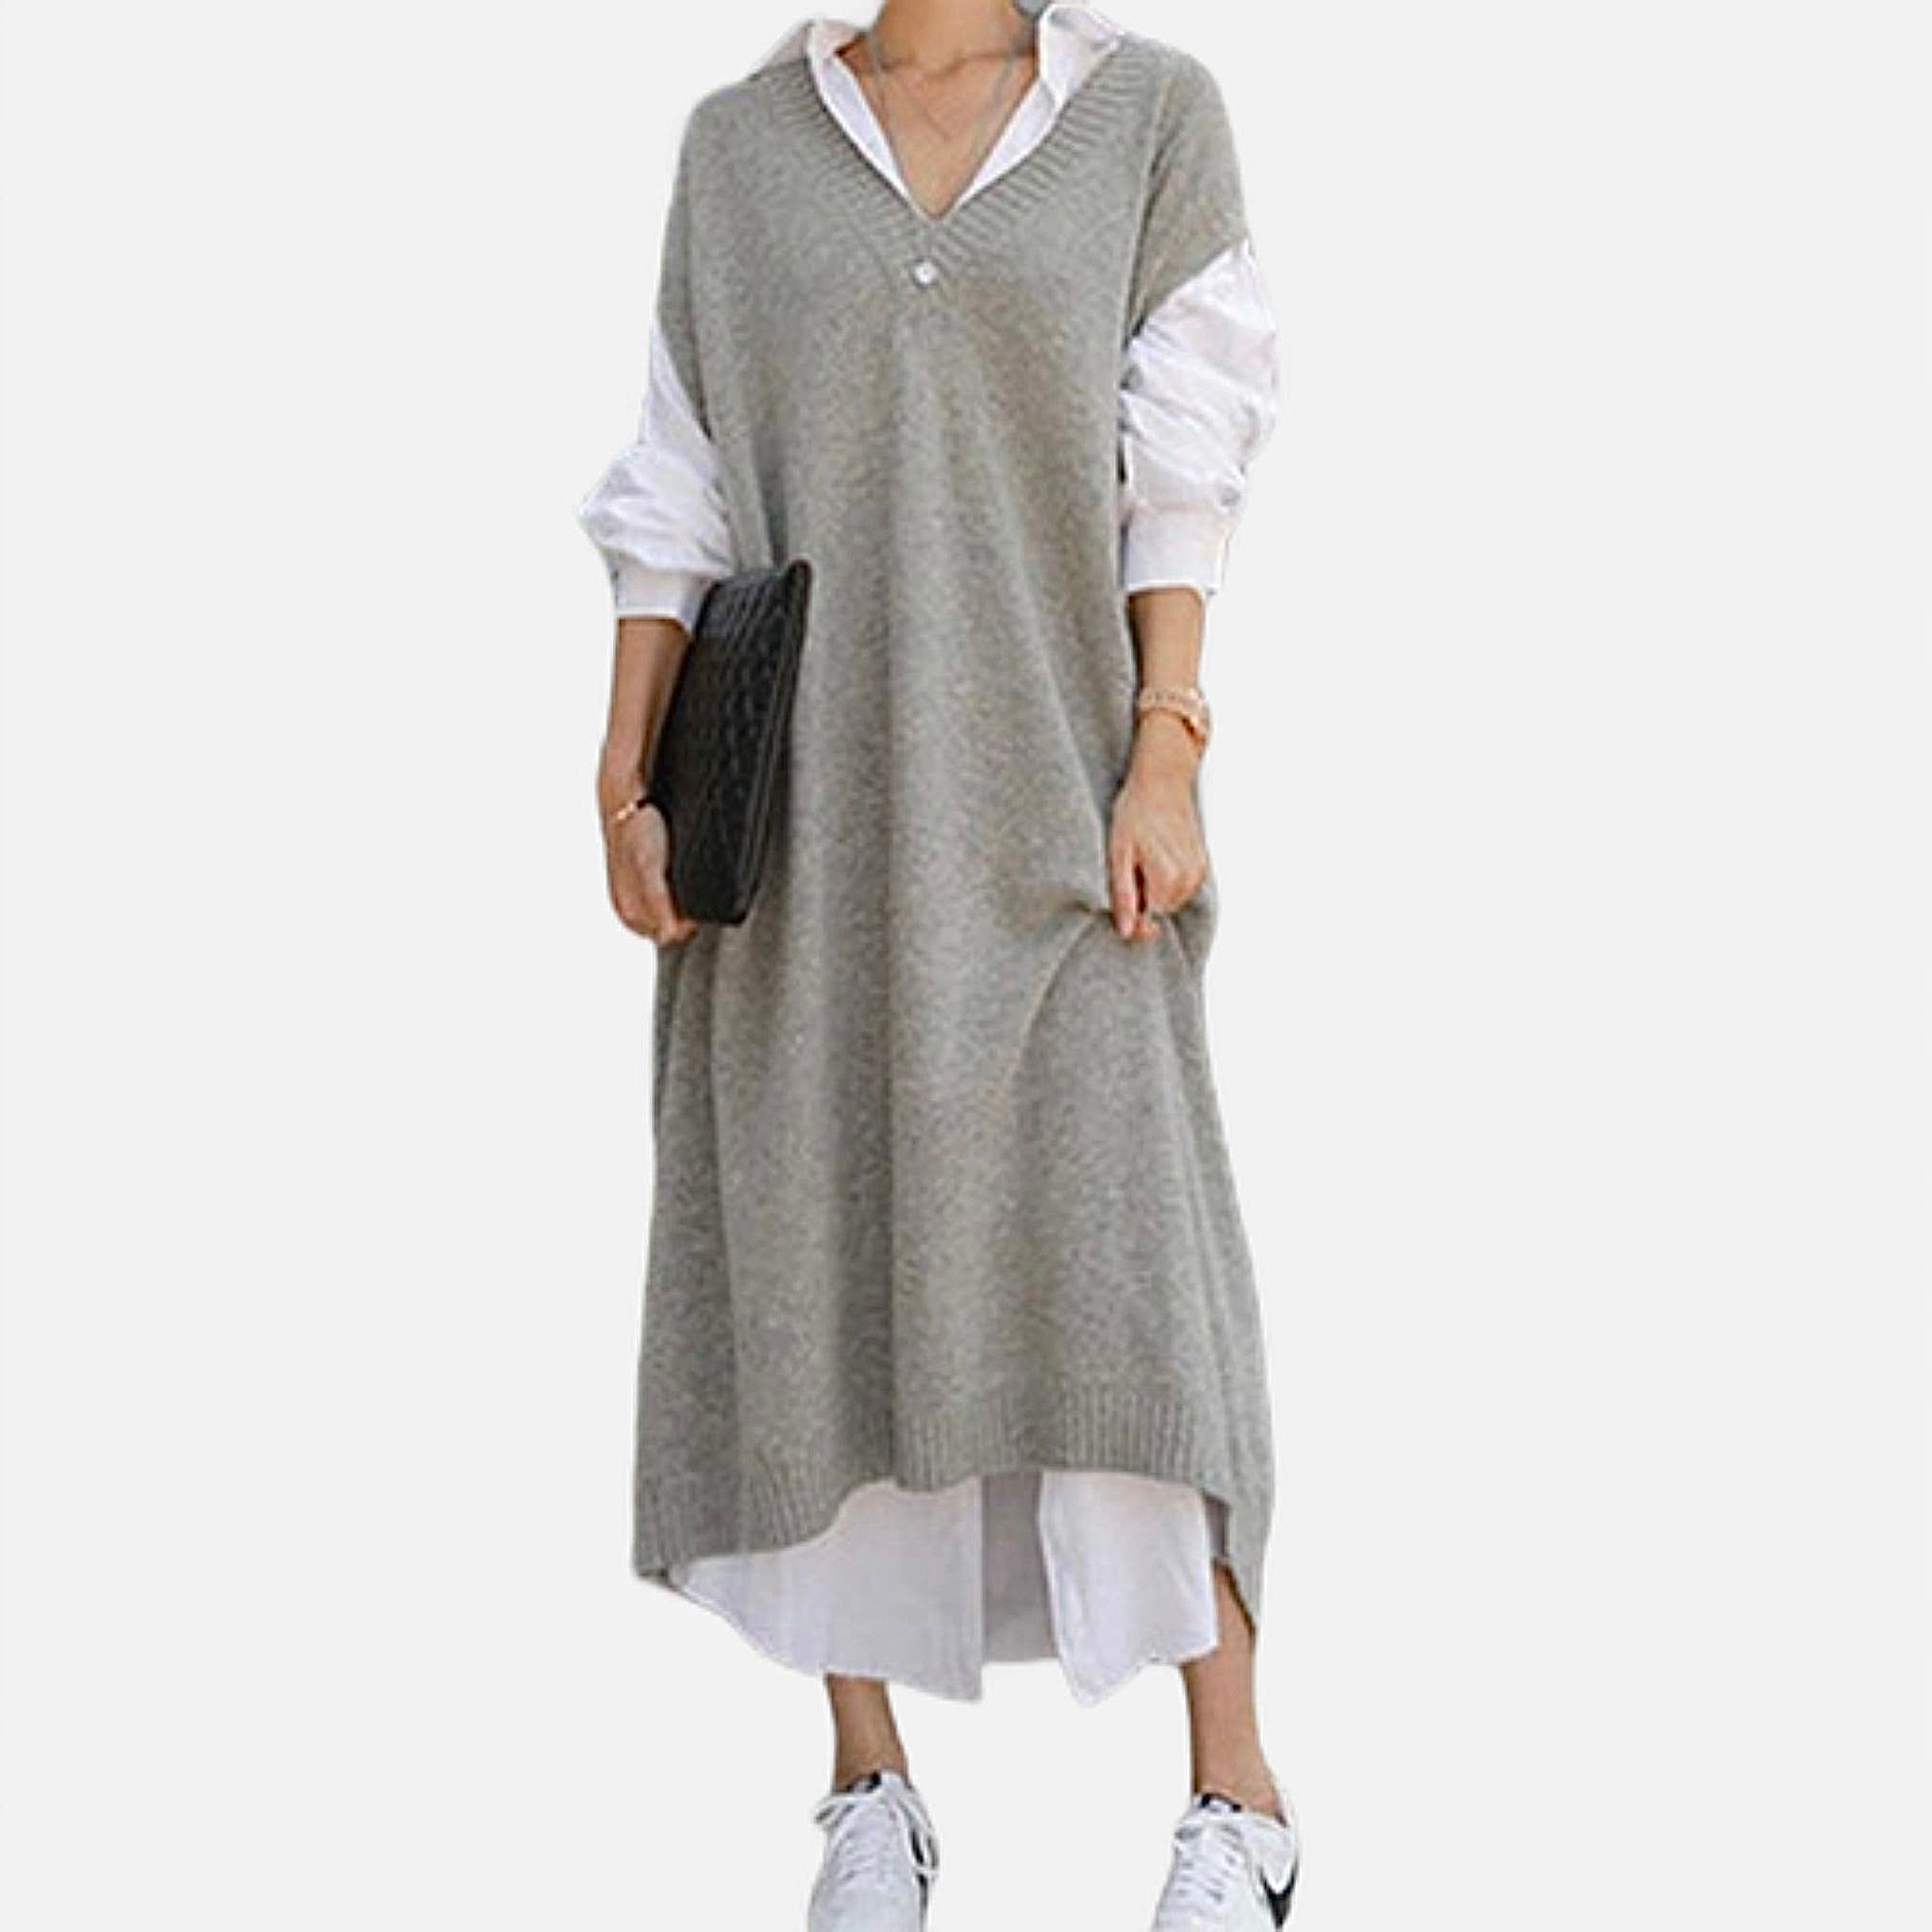 Sleeveless Knit Sweater Dress       Casual oversize straight thick gray / grey knitted long v-neck vest dresses